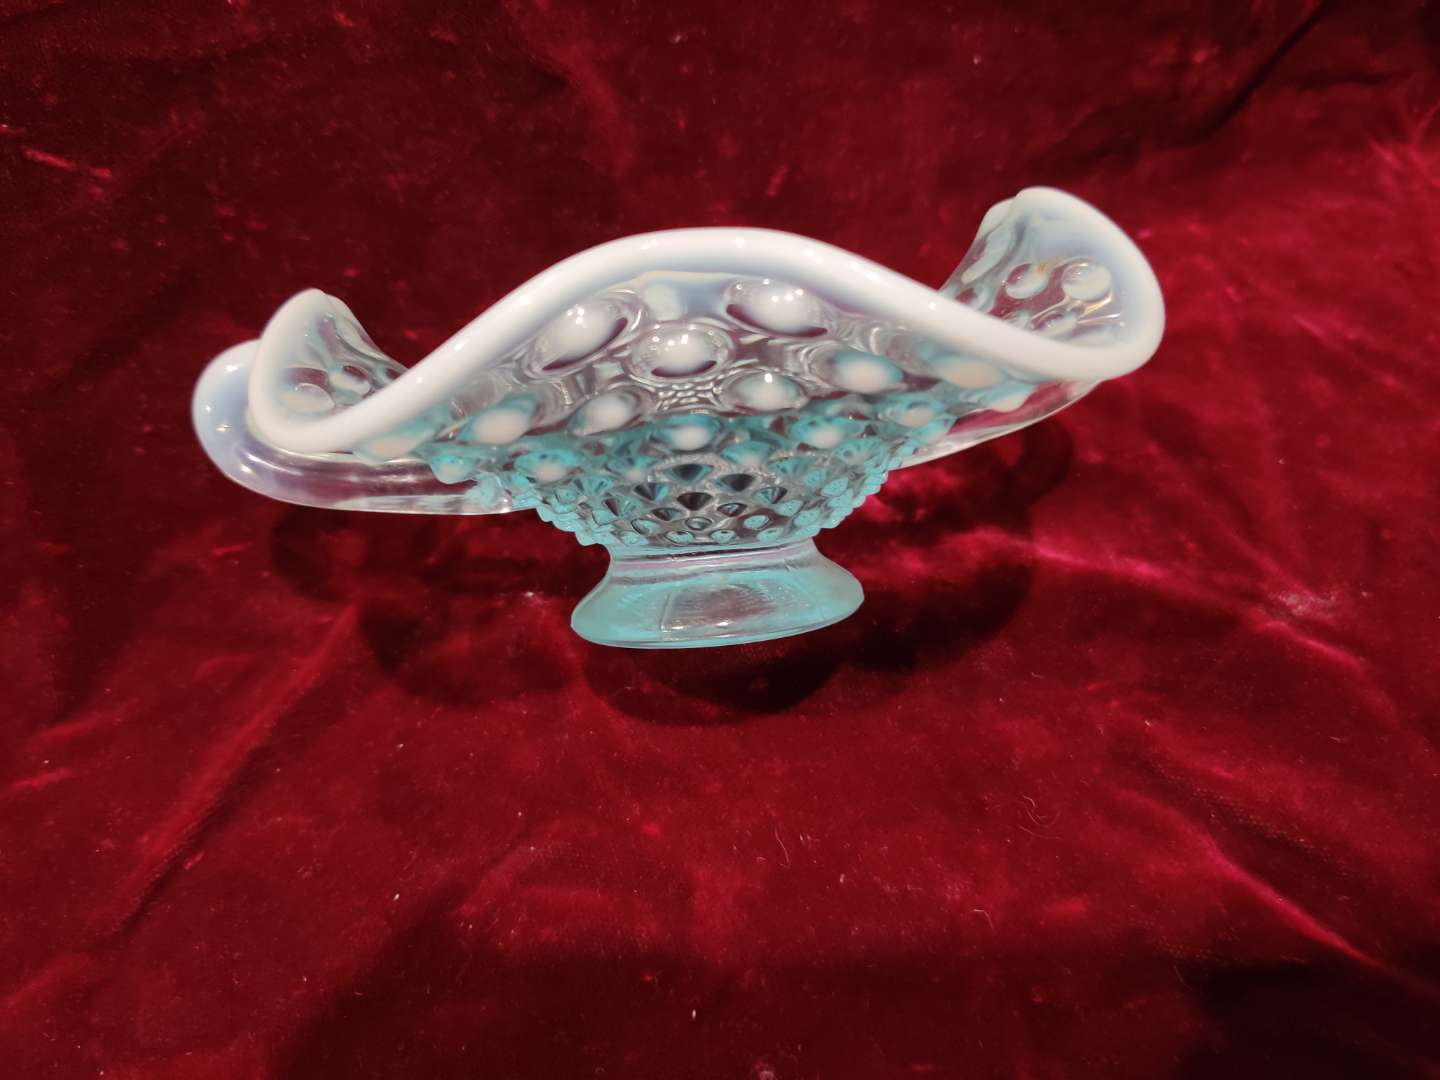 # 54 Fenton hobnail aqua opalescent nappy 2 handle dish 6 in tall and excellent condition